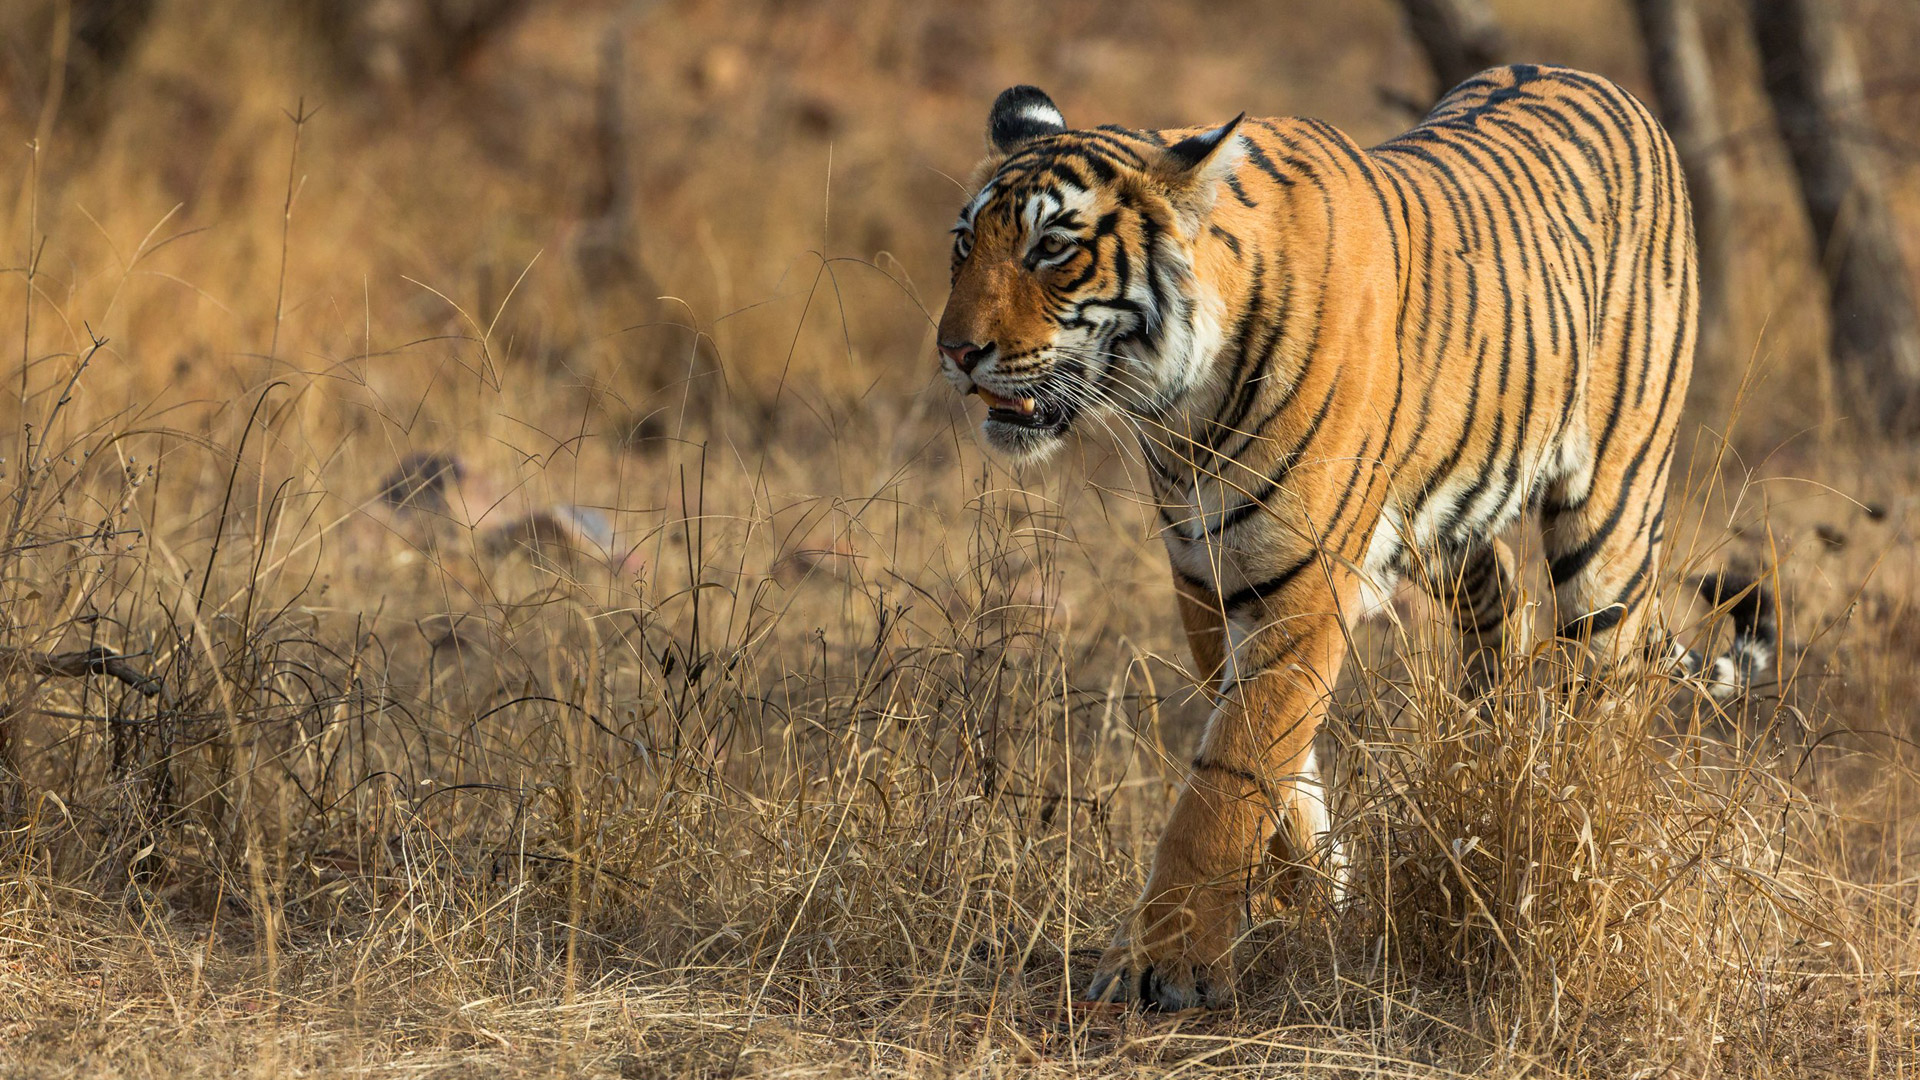 Richard Denyer India 2016 - Tiger